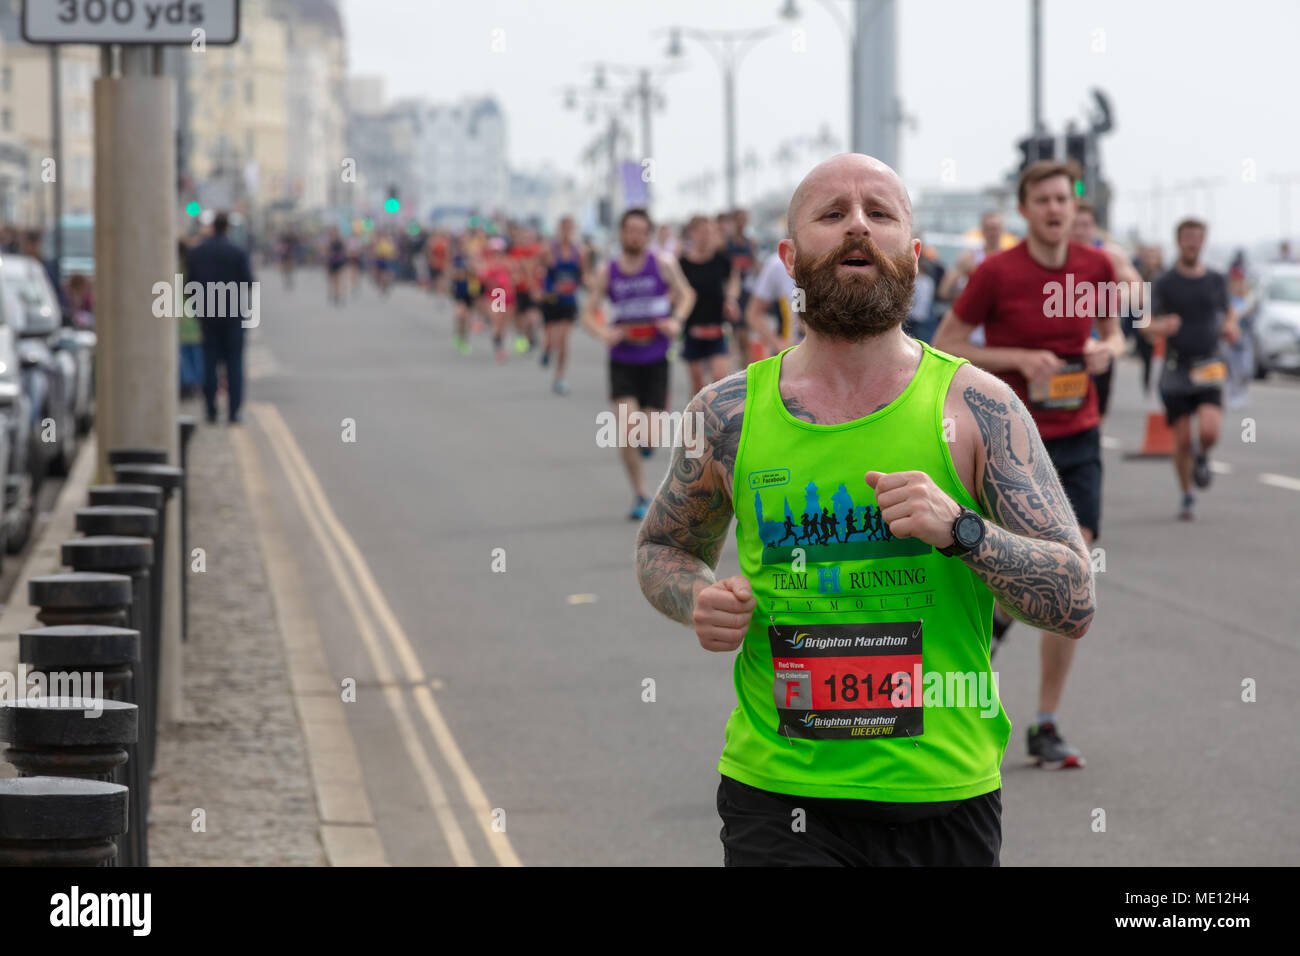 Brighton, Sussex, UK, 15. April 2018; Mann mit Tätowierungen und Bart in Brighton Marathon Stockbild